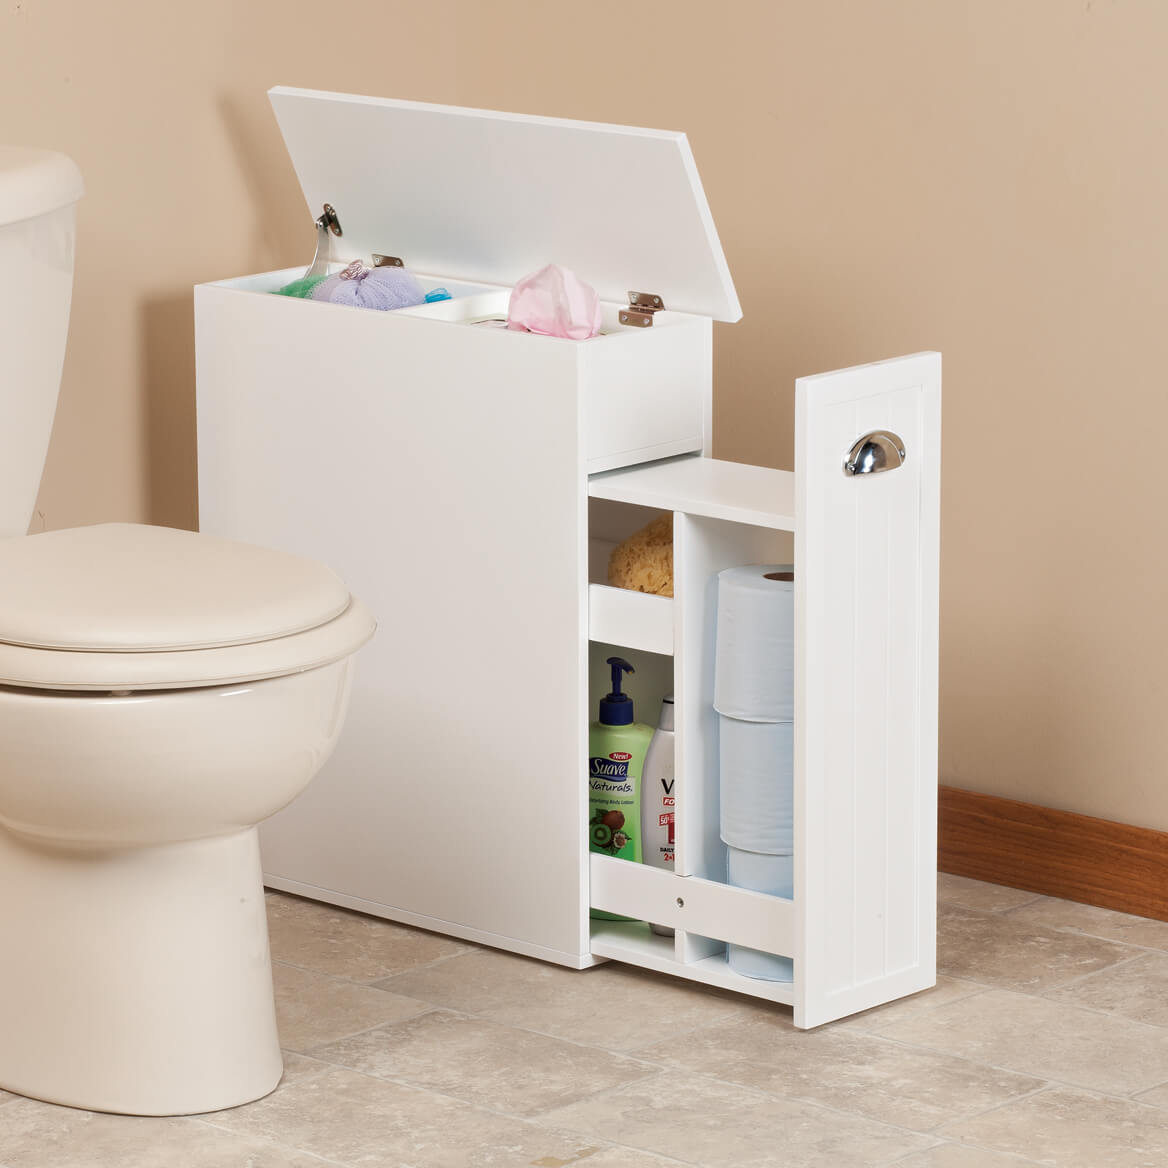 Slim bathroom storage cabinet by oakridge slim cabinet miles kimball for Small storage cabinets for bathroom